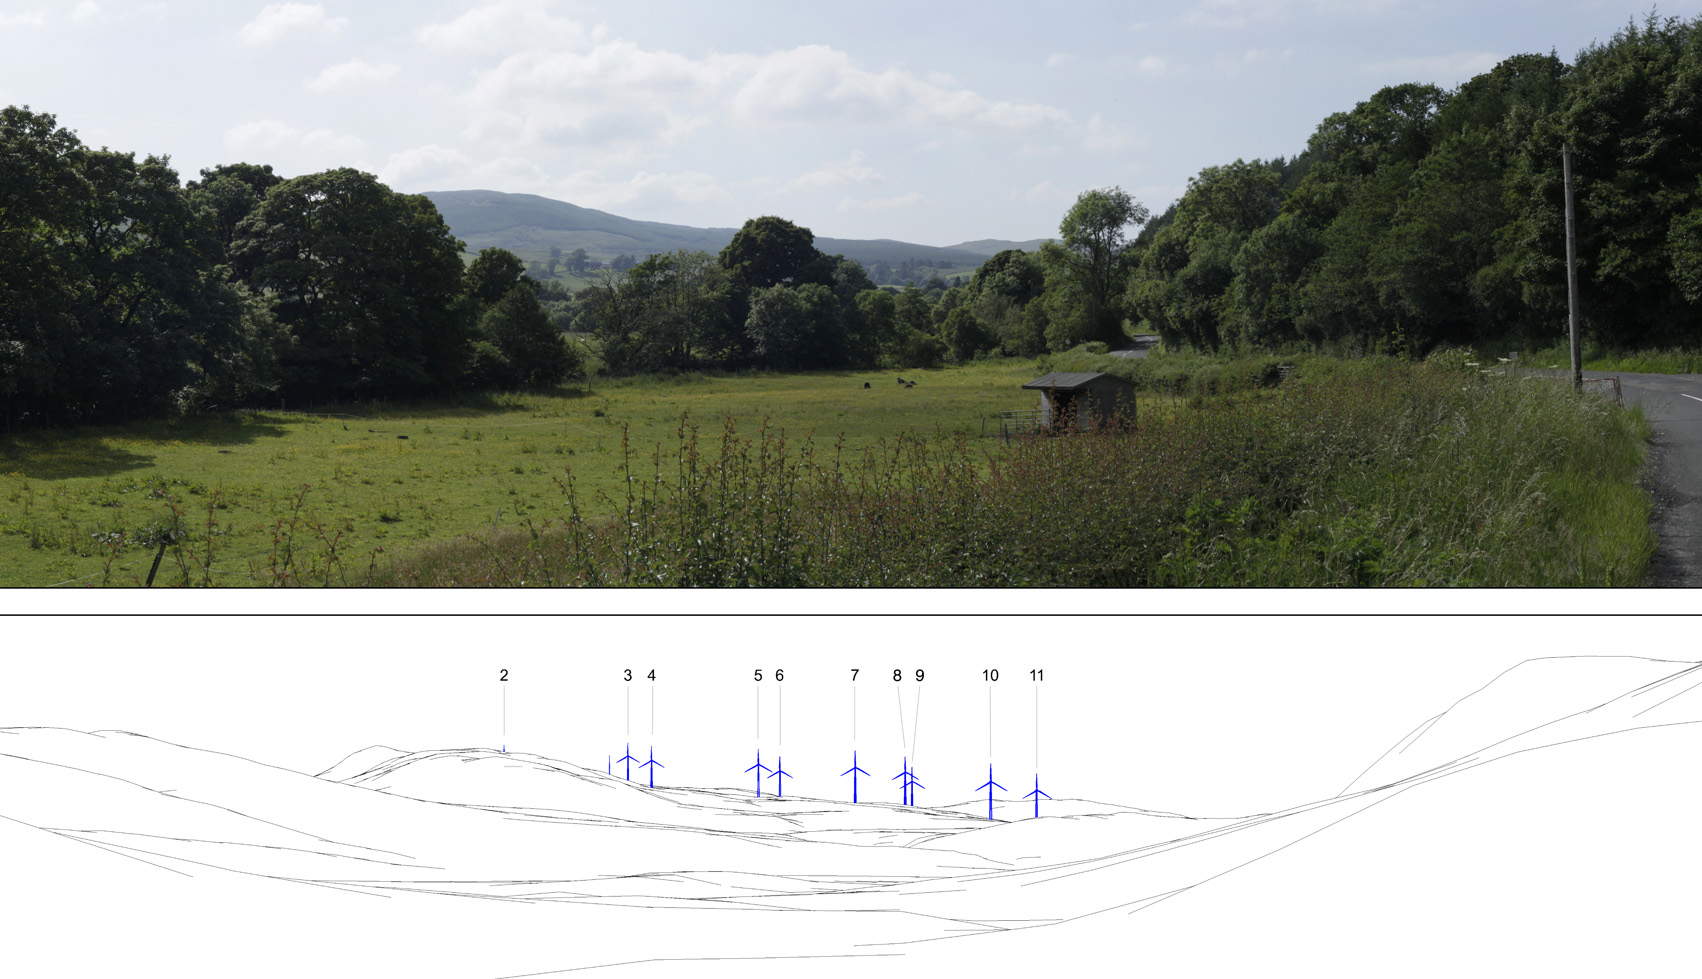 A view of the proposed site with wireframe diagram below of how the turbines would deface the beautiful scenery.